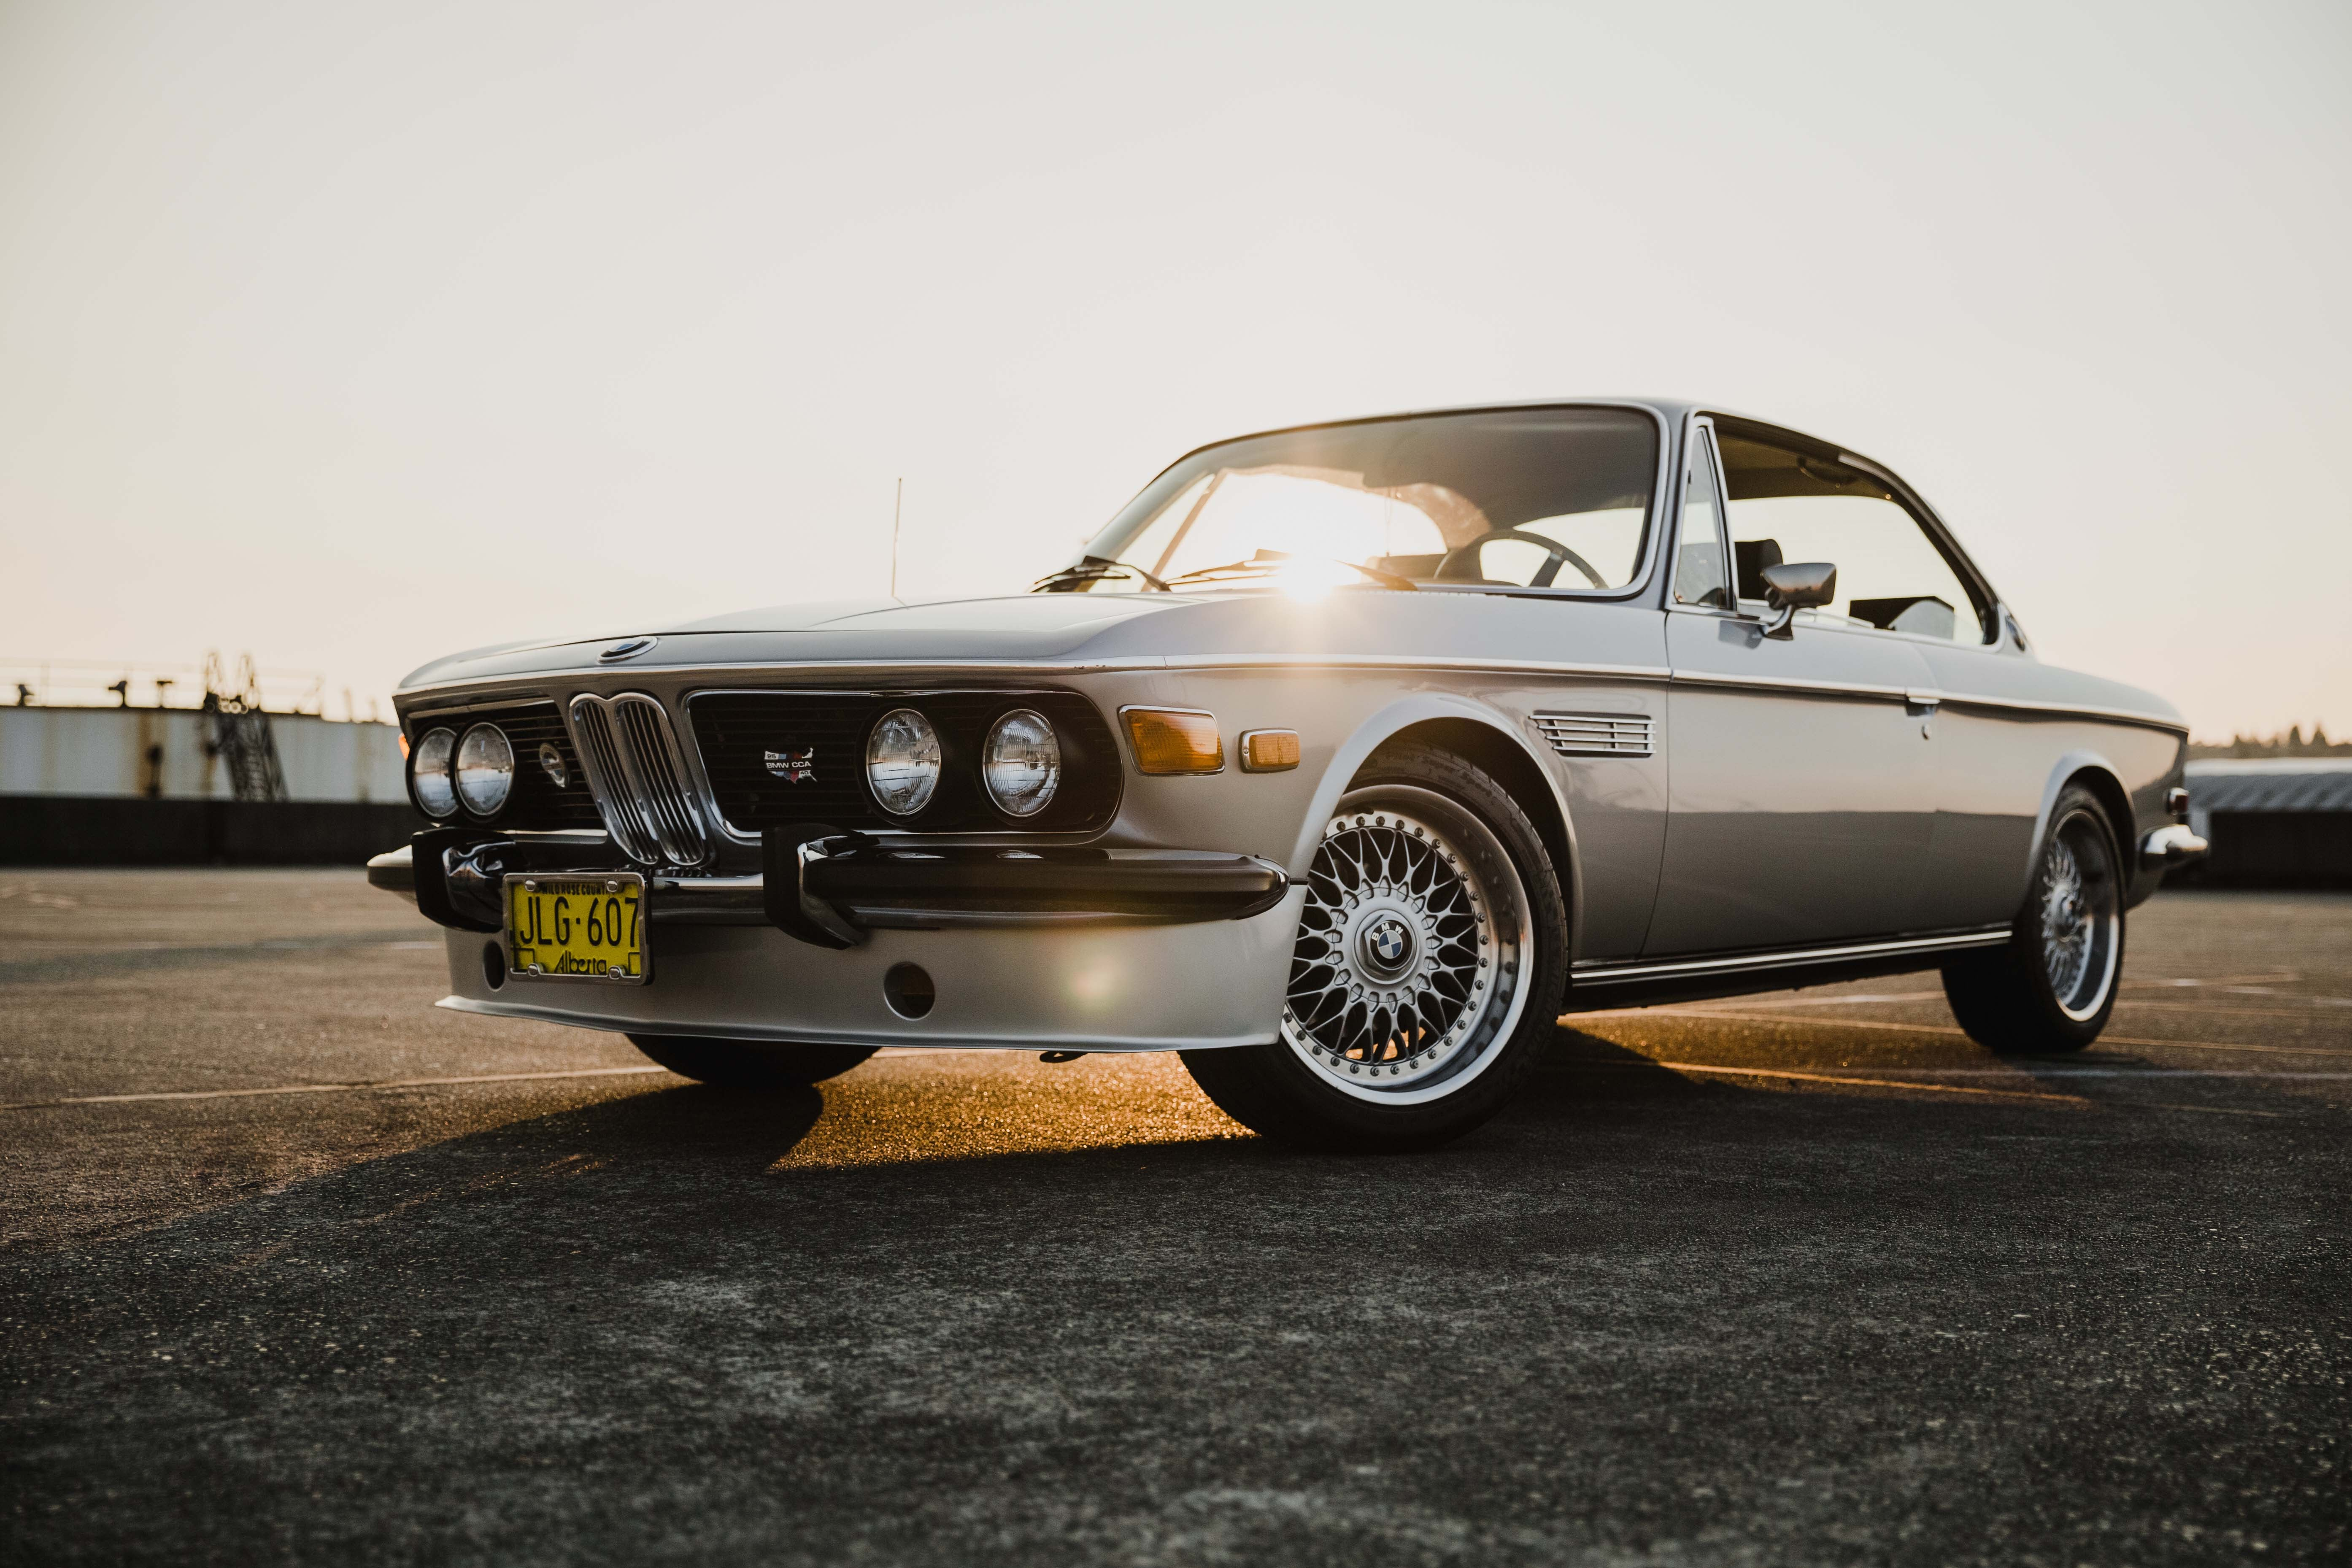 Your Ridiculously Awesome Bmw E9 Wallpaper Is Here